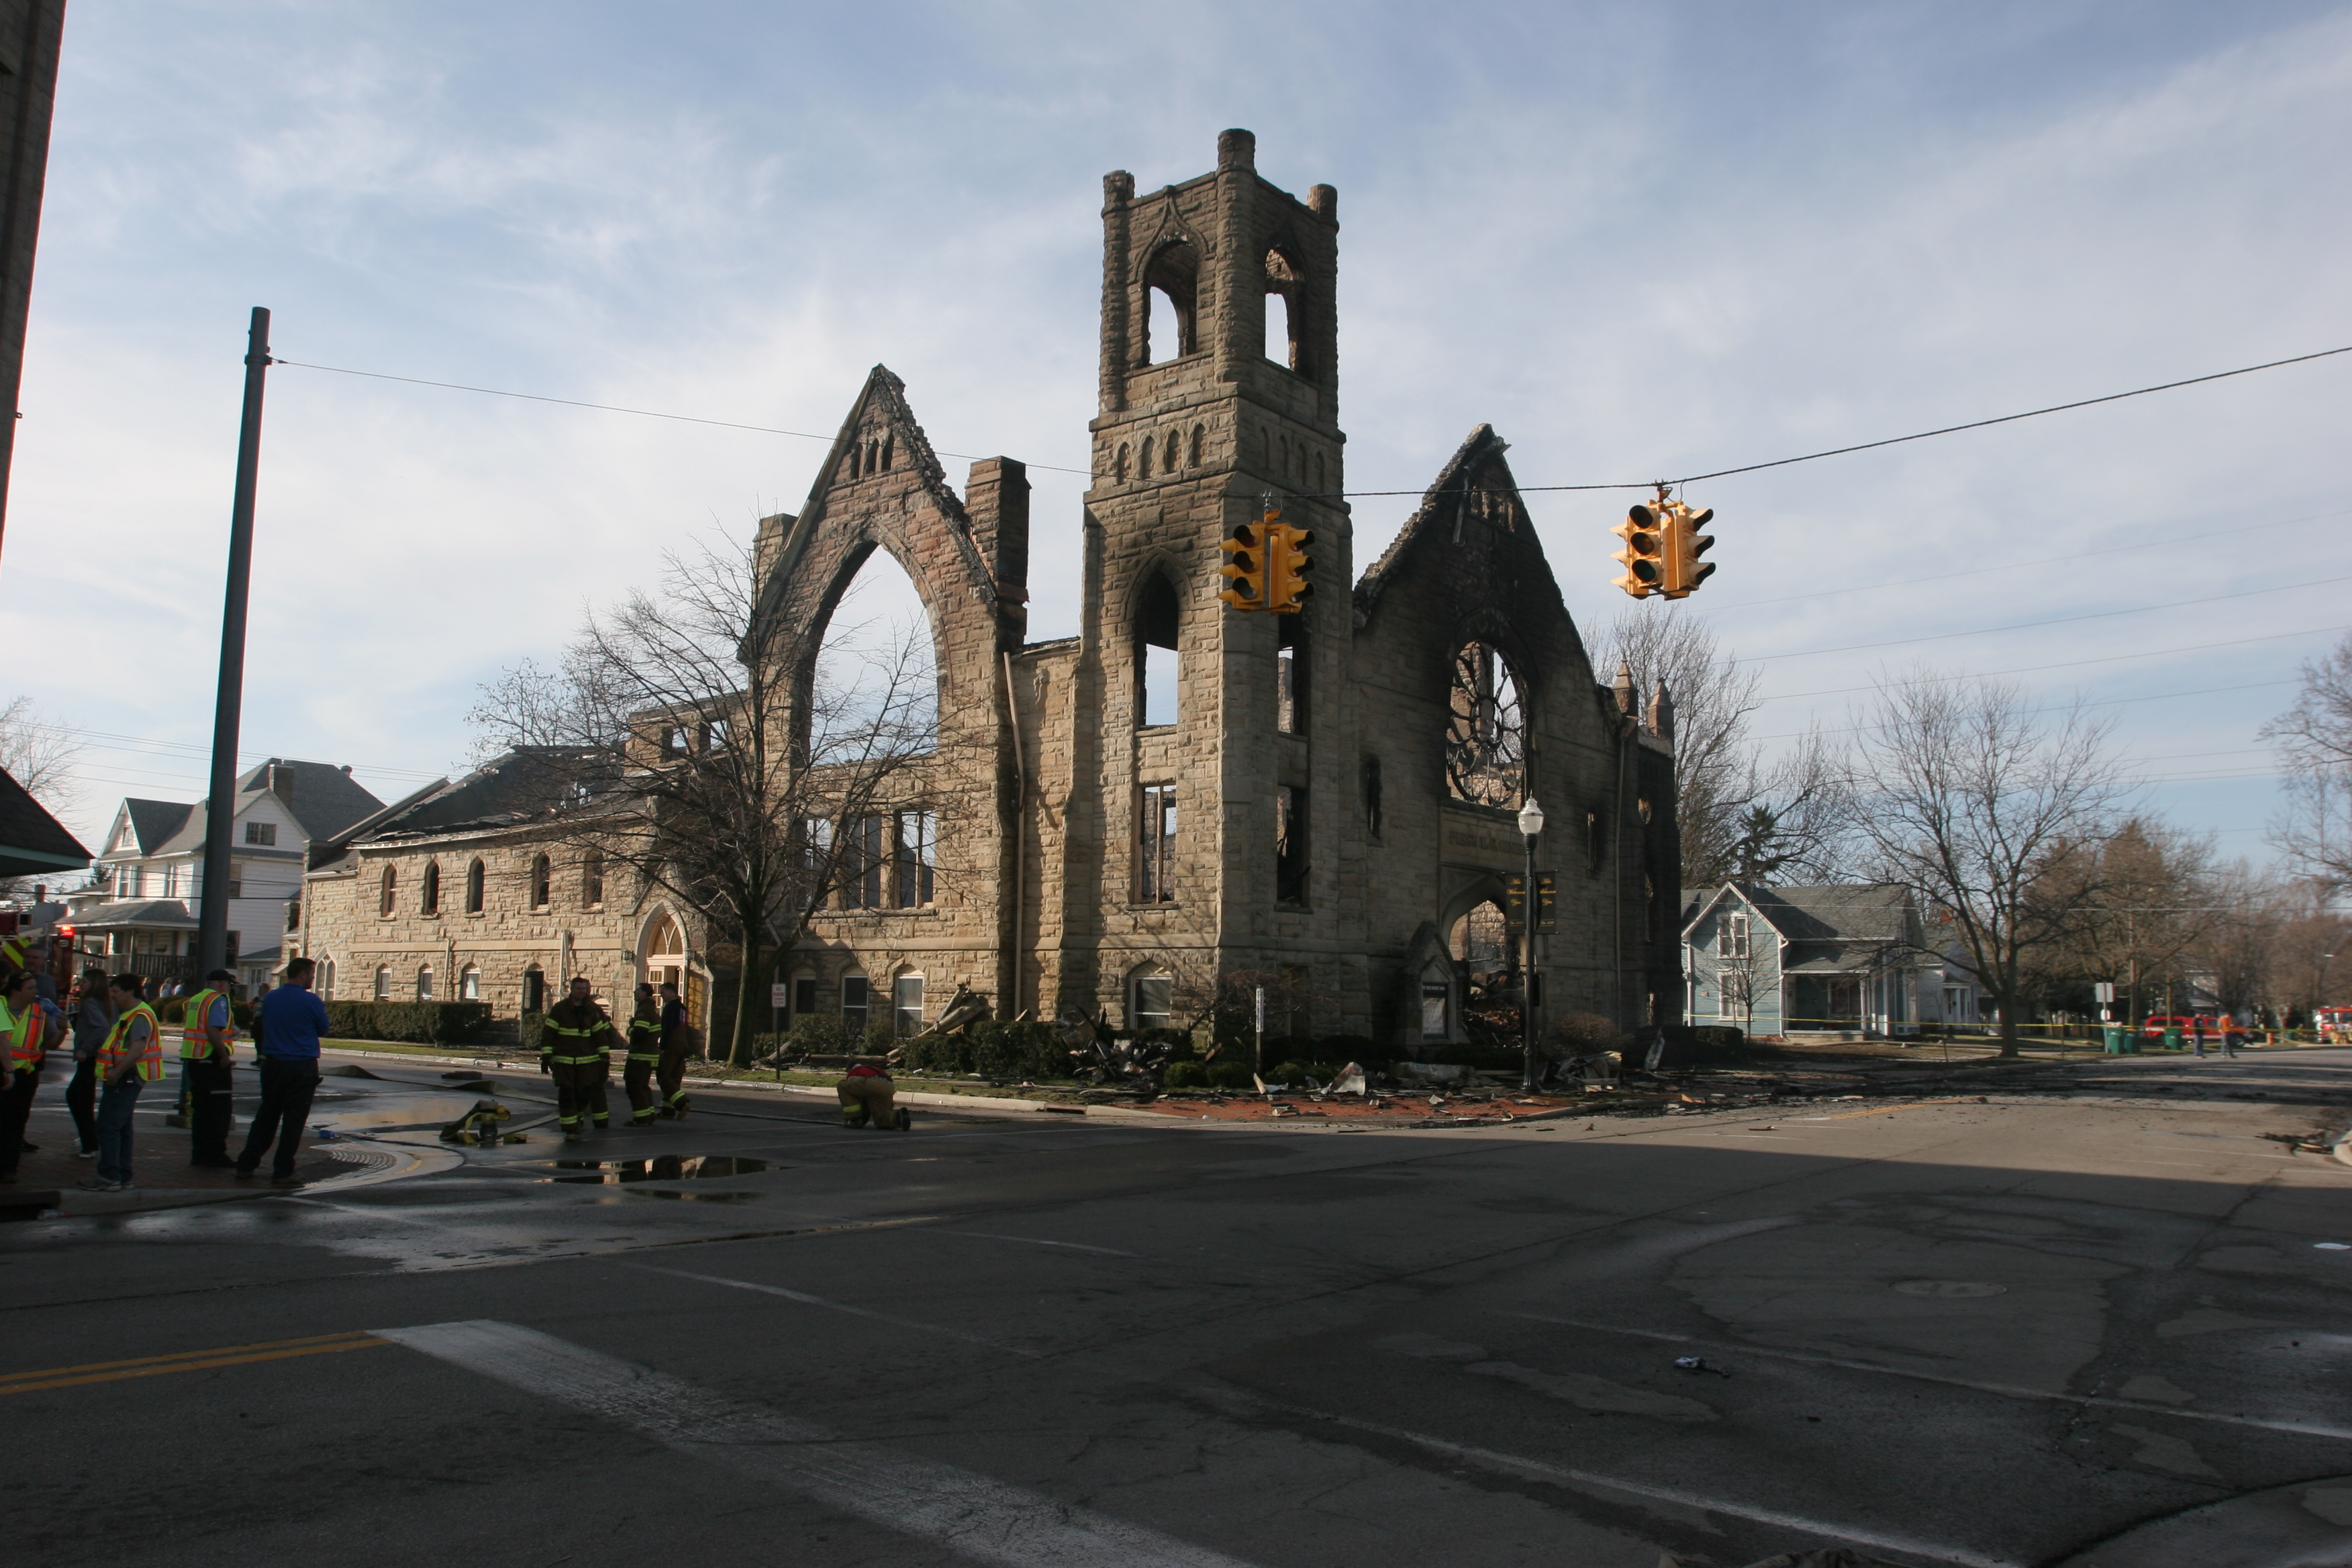 Ada congregation to rebuild on old church site - The Blade